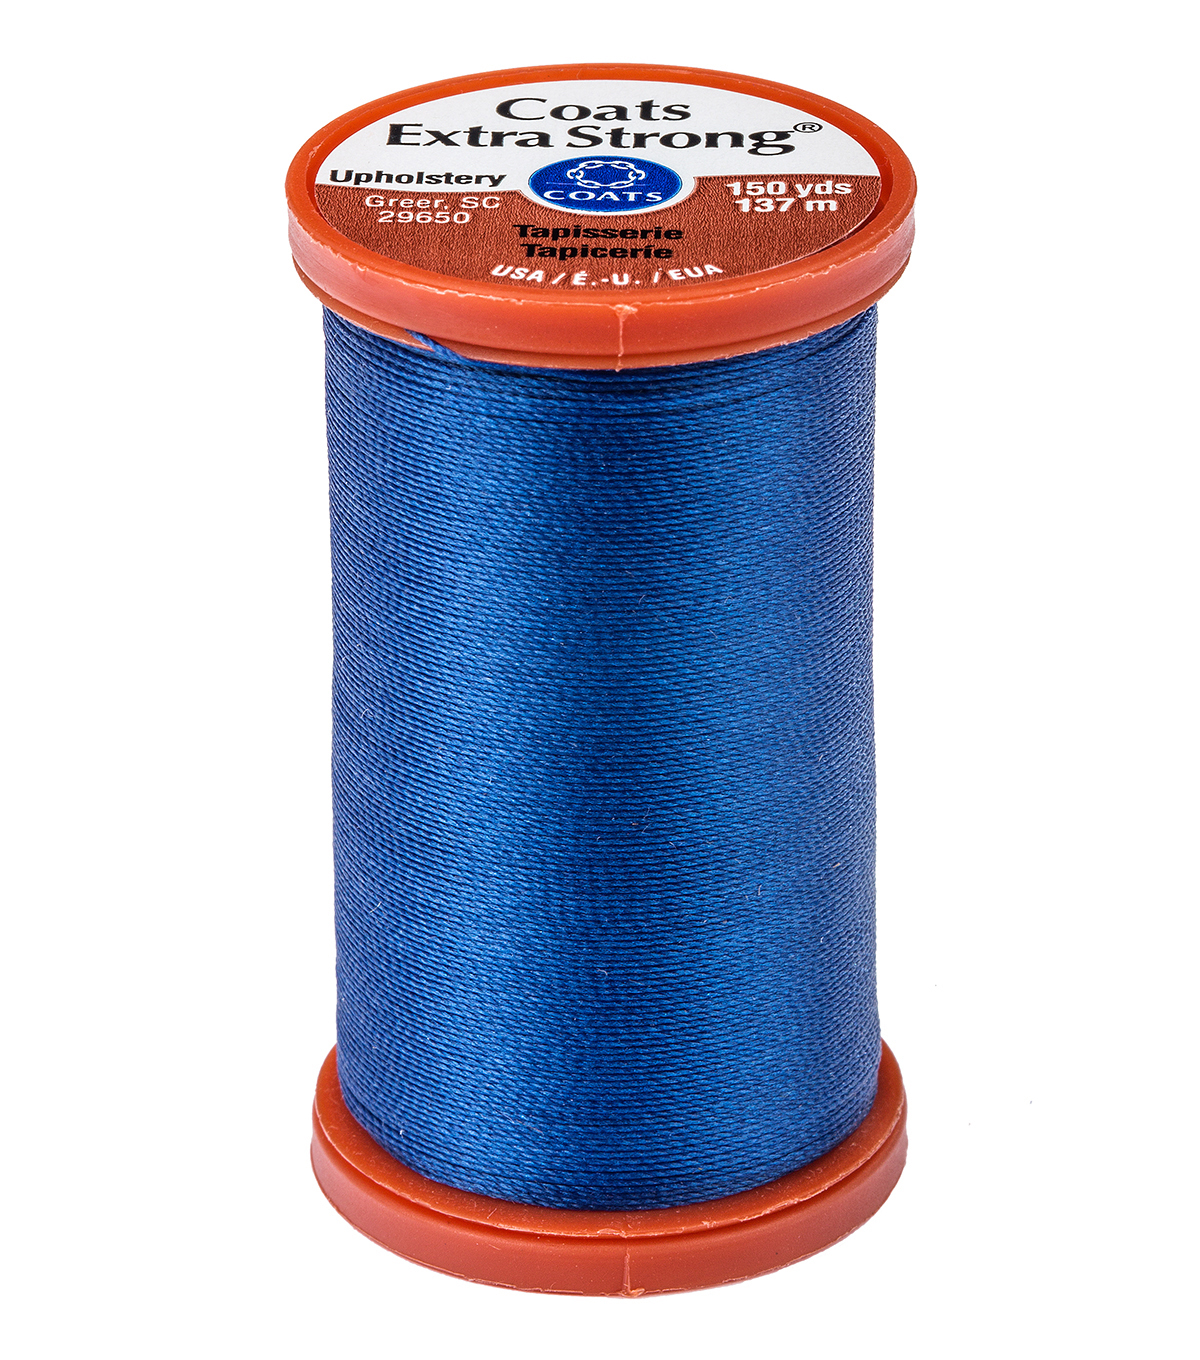 Coats & Clark Extra Strong & Upholstery Thread 150 yd , Yale Blue